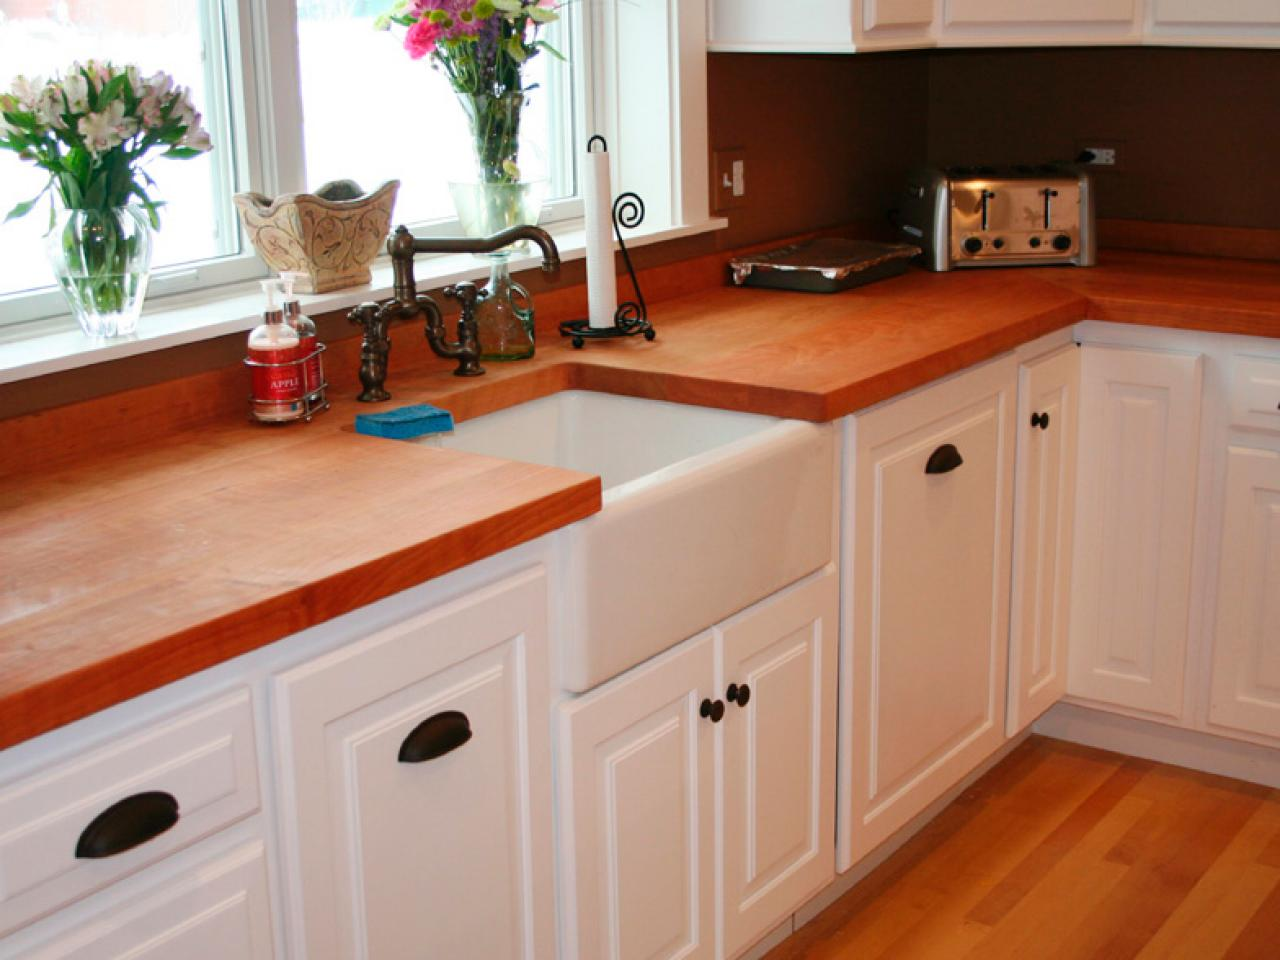 Kitchen Cabinet Pulls: Pictures, Options, Tips & Ideas | HGTV